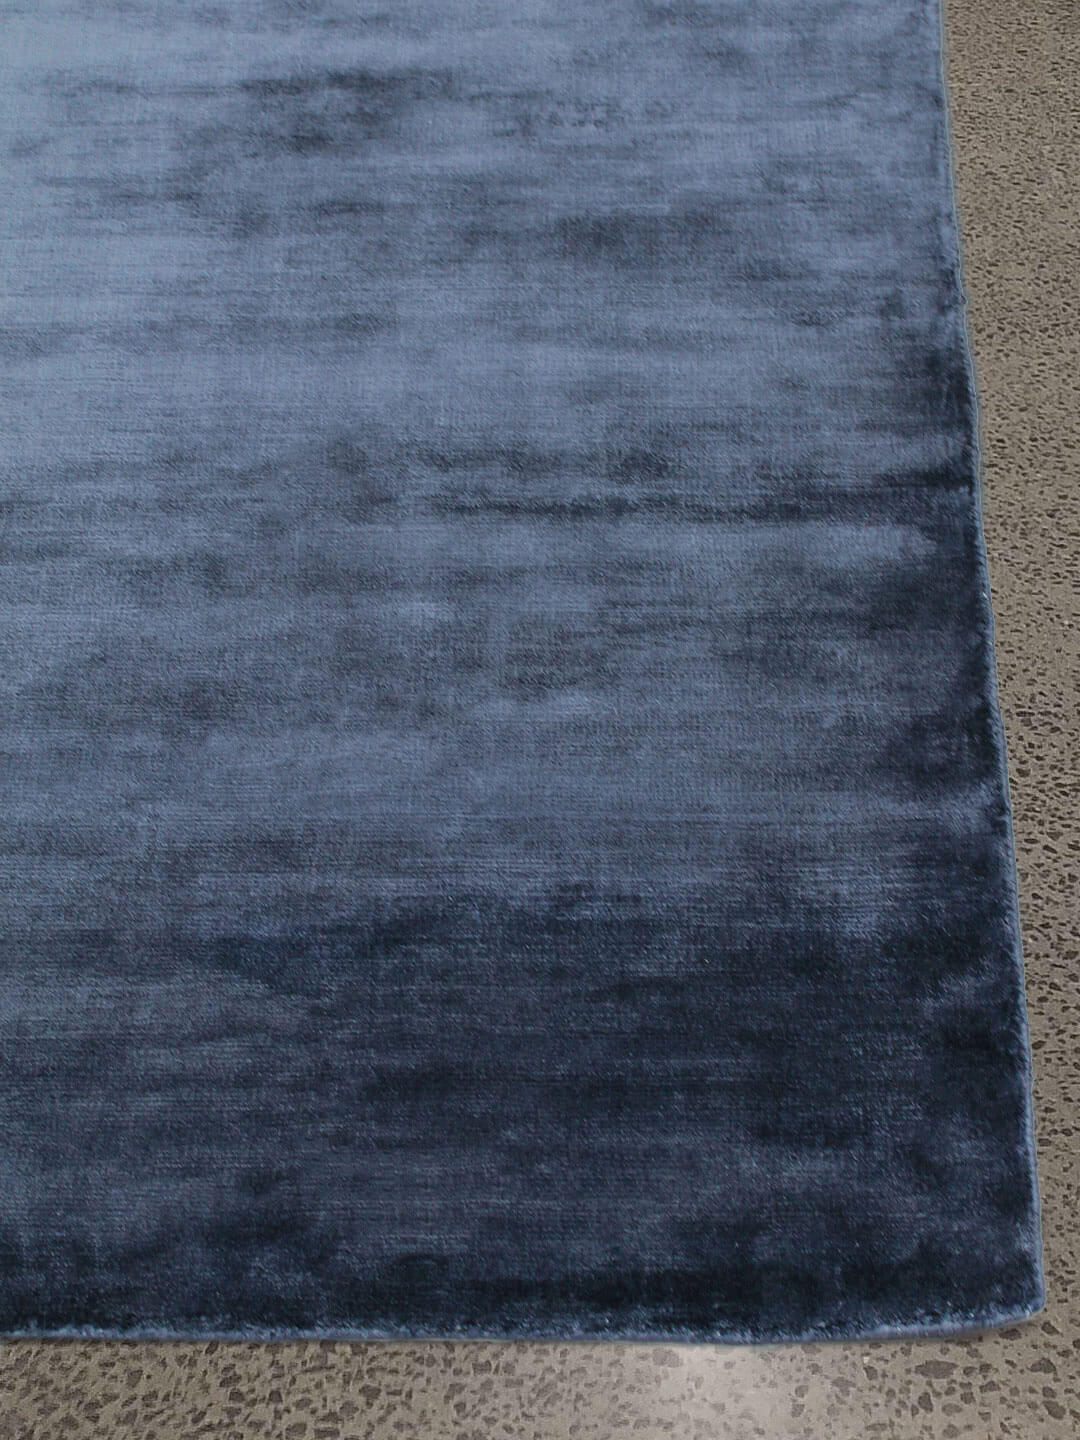 nvy-blue-art silk-hand woven-Stans-rugs-glitz-perth